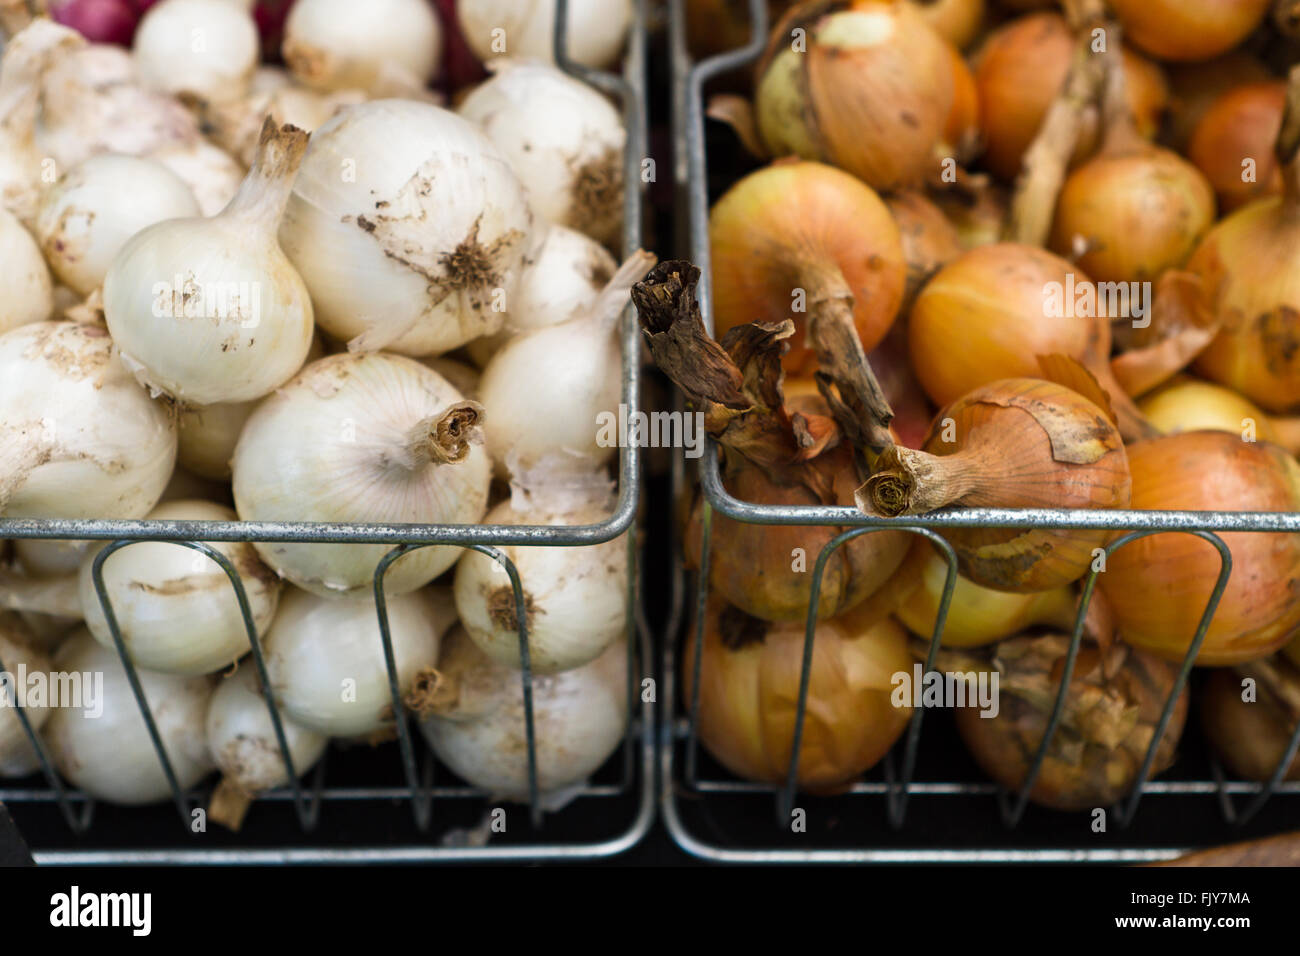 Freshly picked onions in baskets at outdoor farmers market Stock Photo